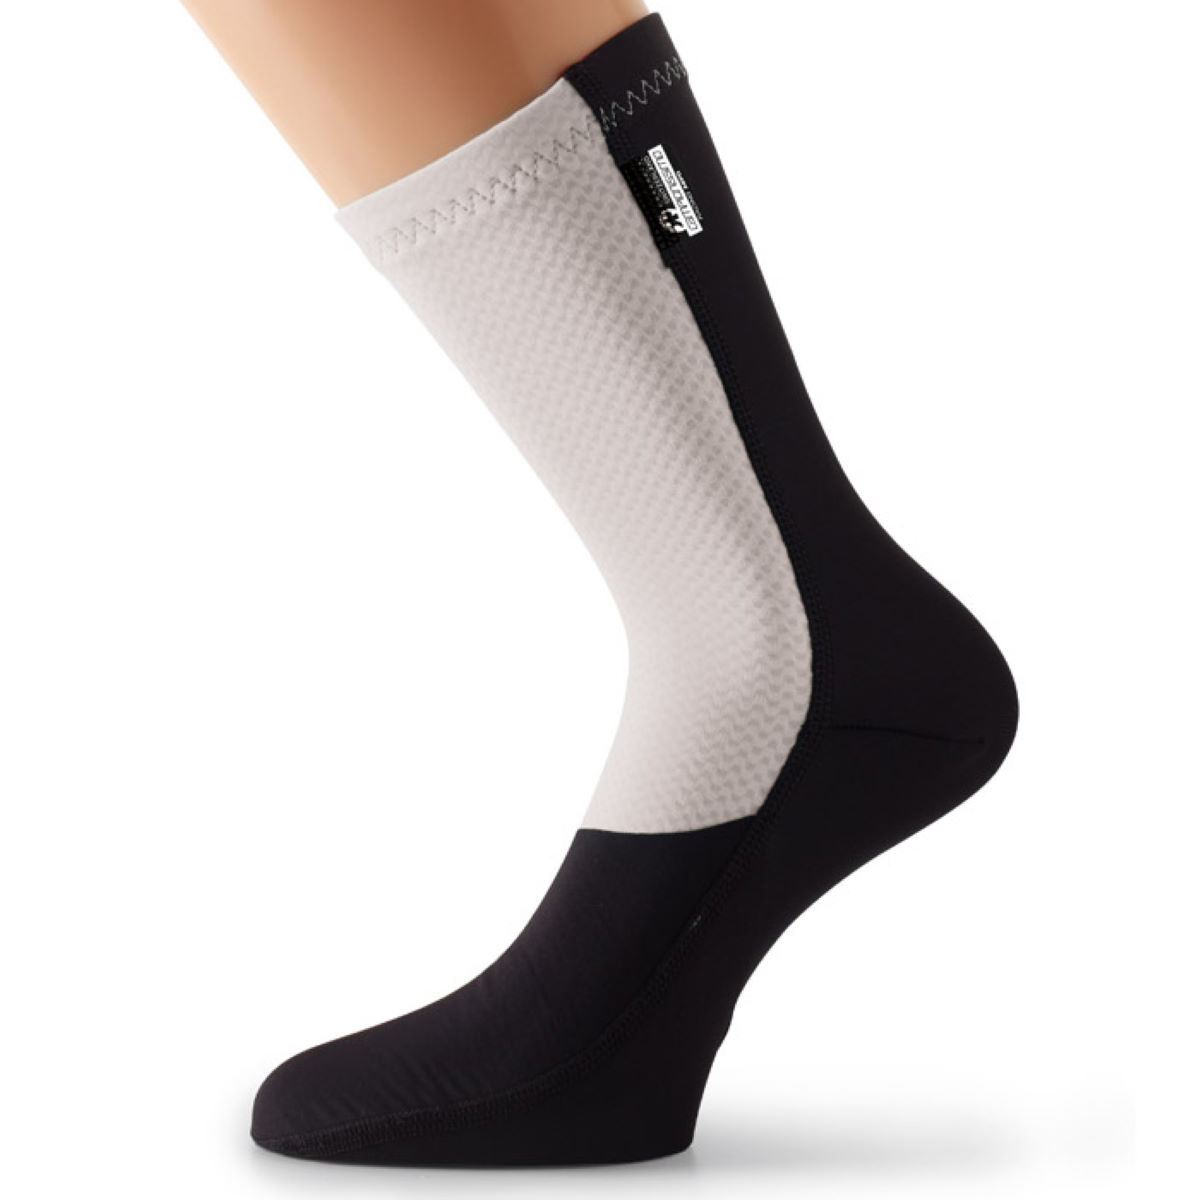 Chaussettes Assos fuguSpeer_S7 - (0) White Panther Chaussettes vélo